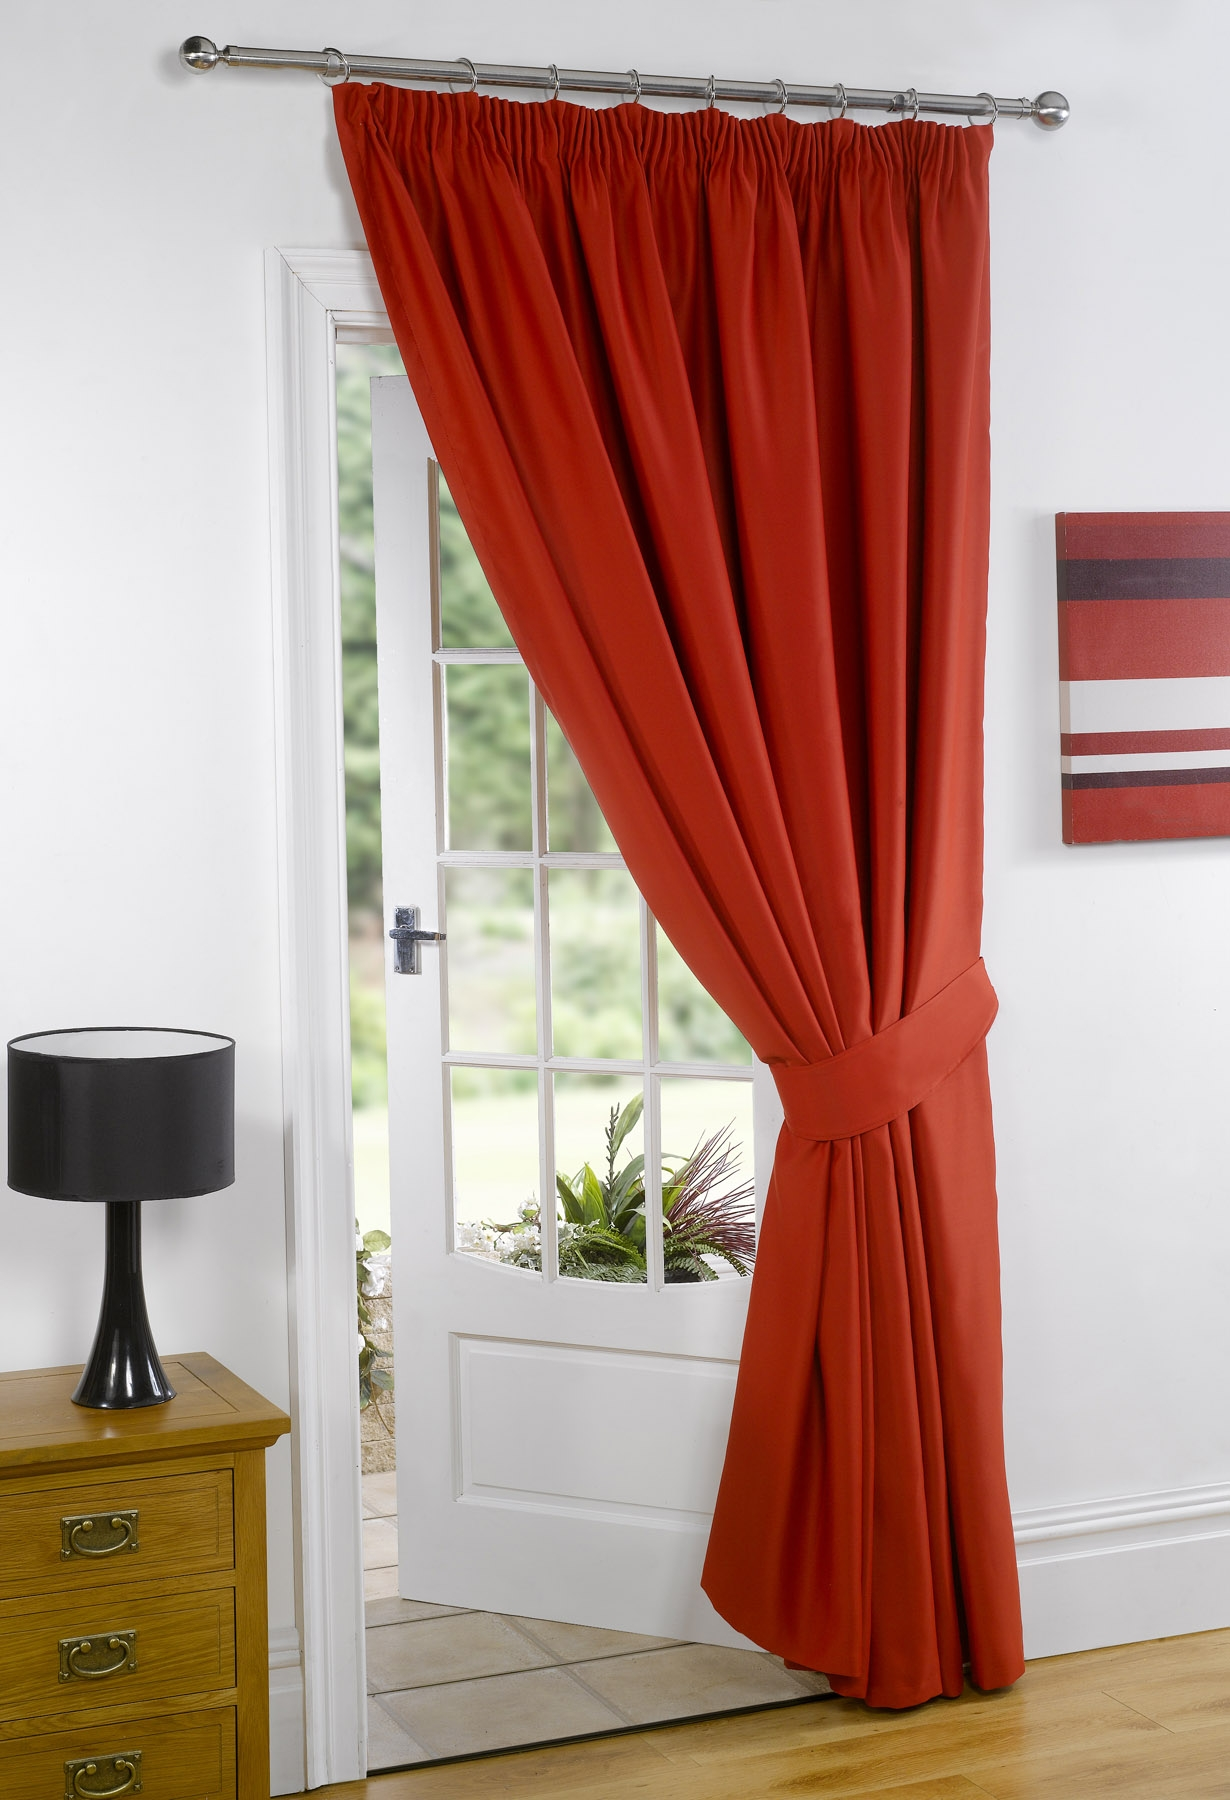 gabriella energy window osp s exclusive saving deals shop inches blackout decor curtains pack red x